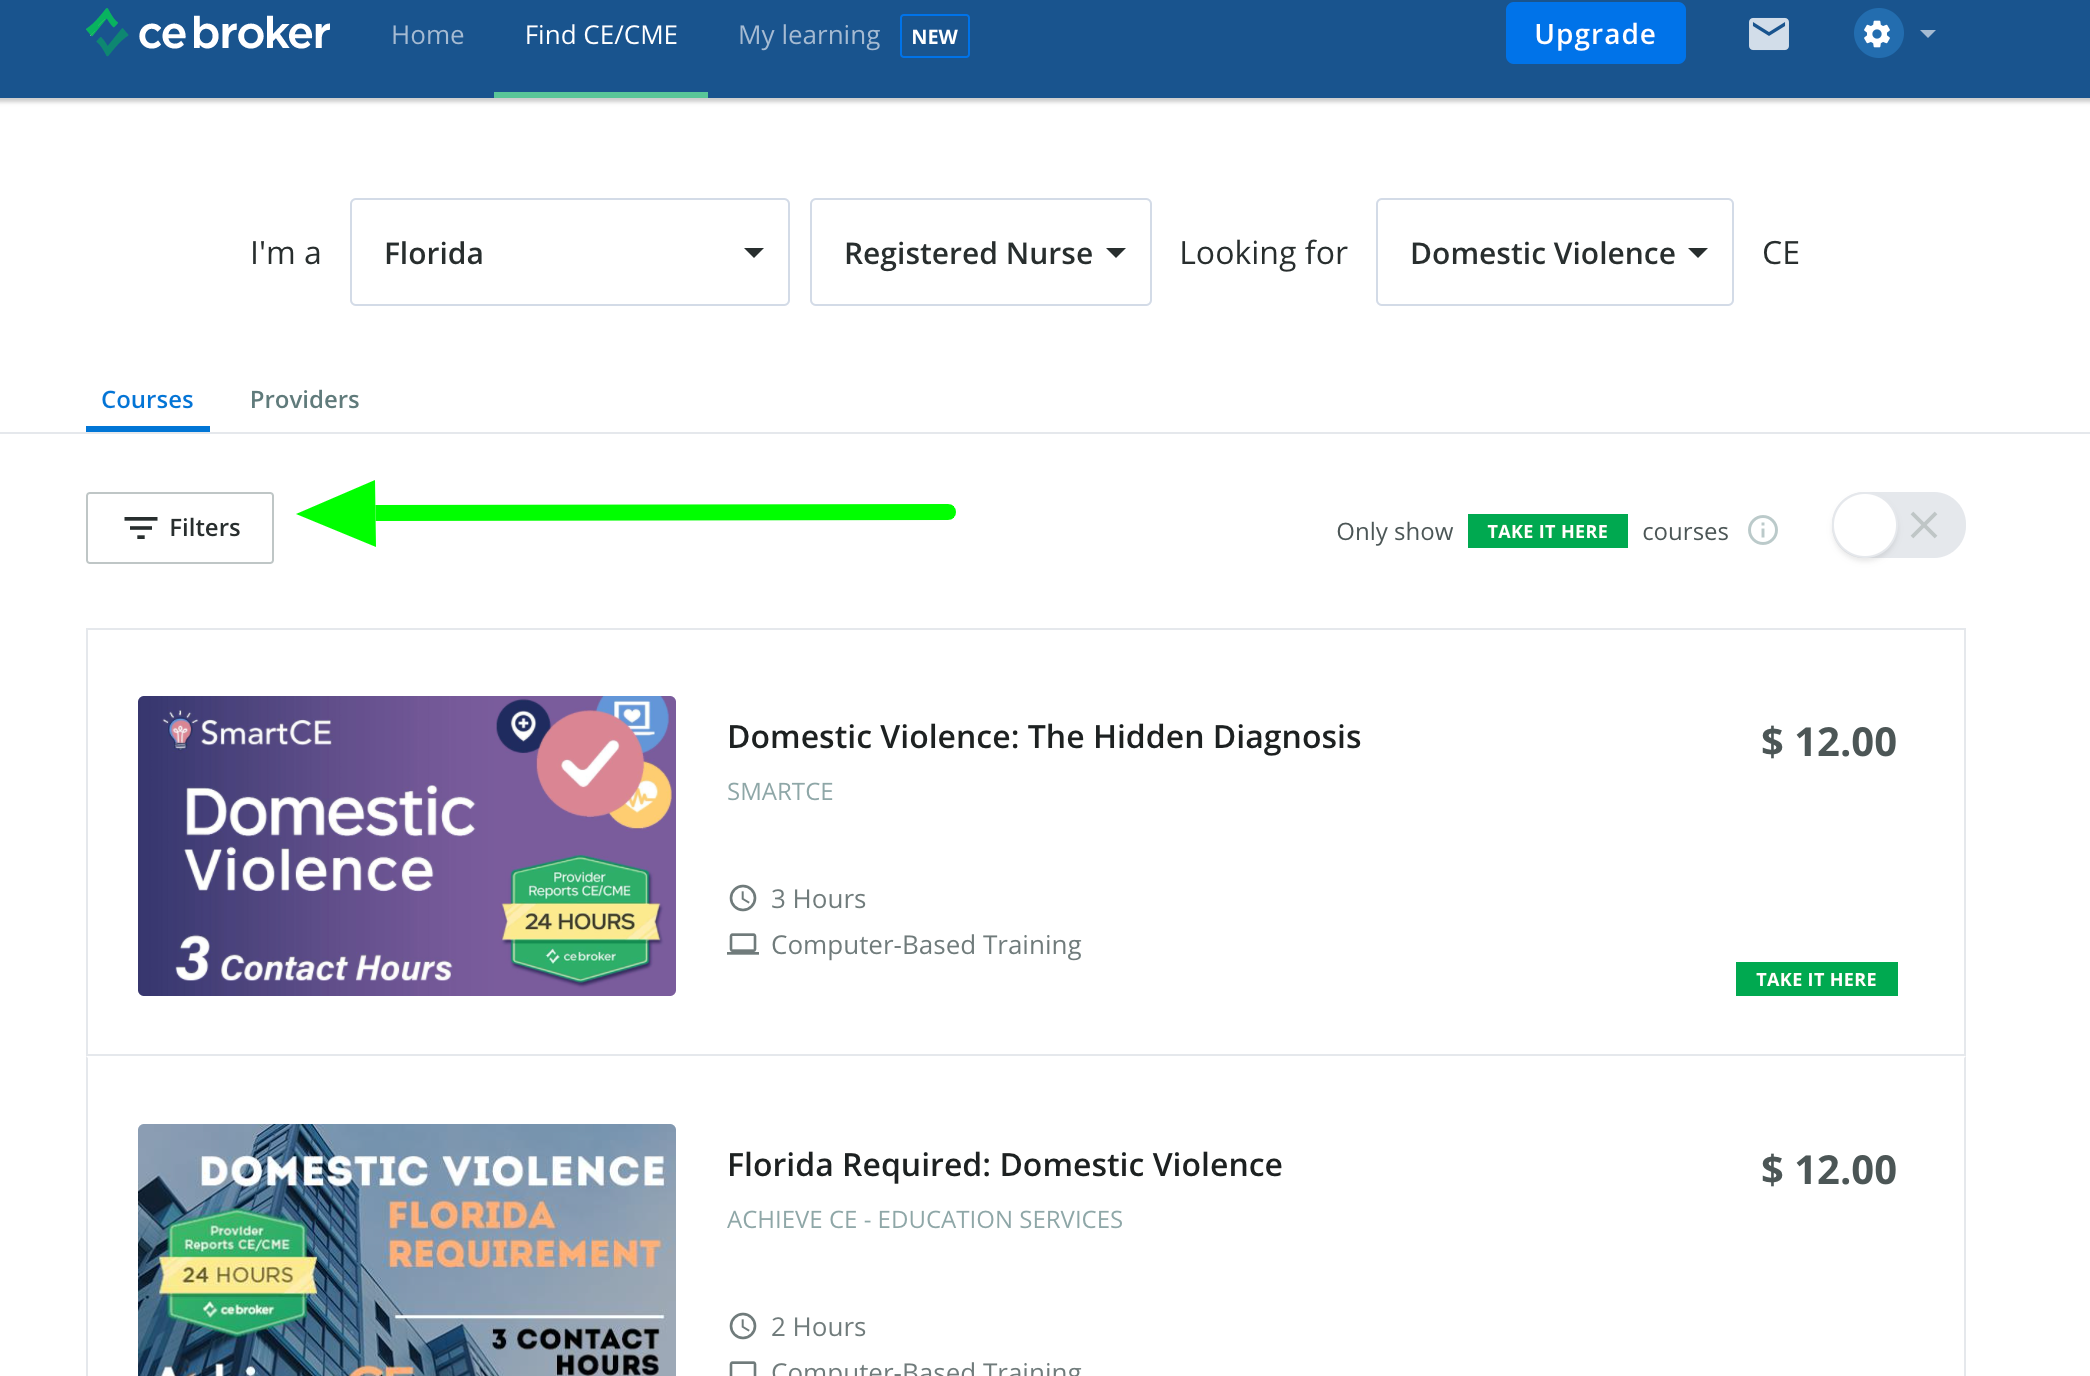 Screenshot of the course search page with an arrow pointing to the Filters button on the left side of the screen.